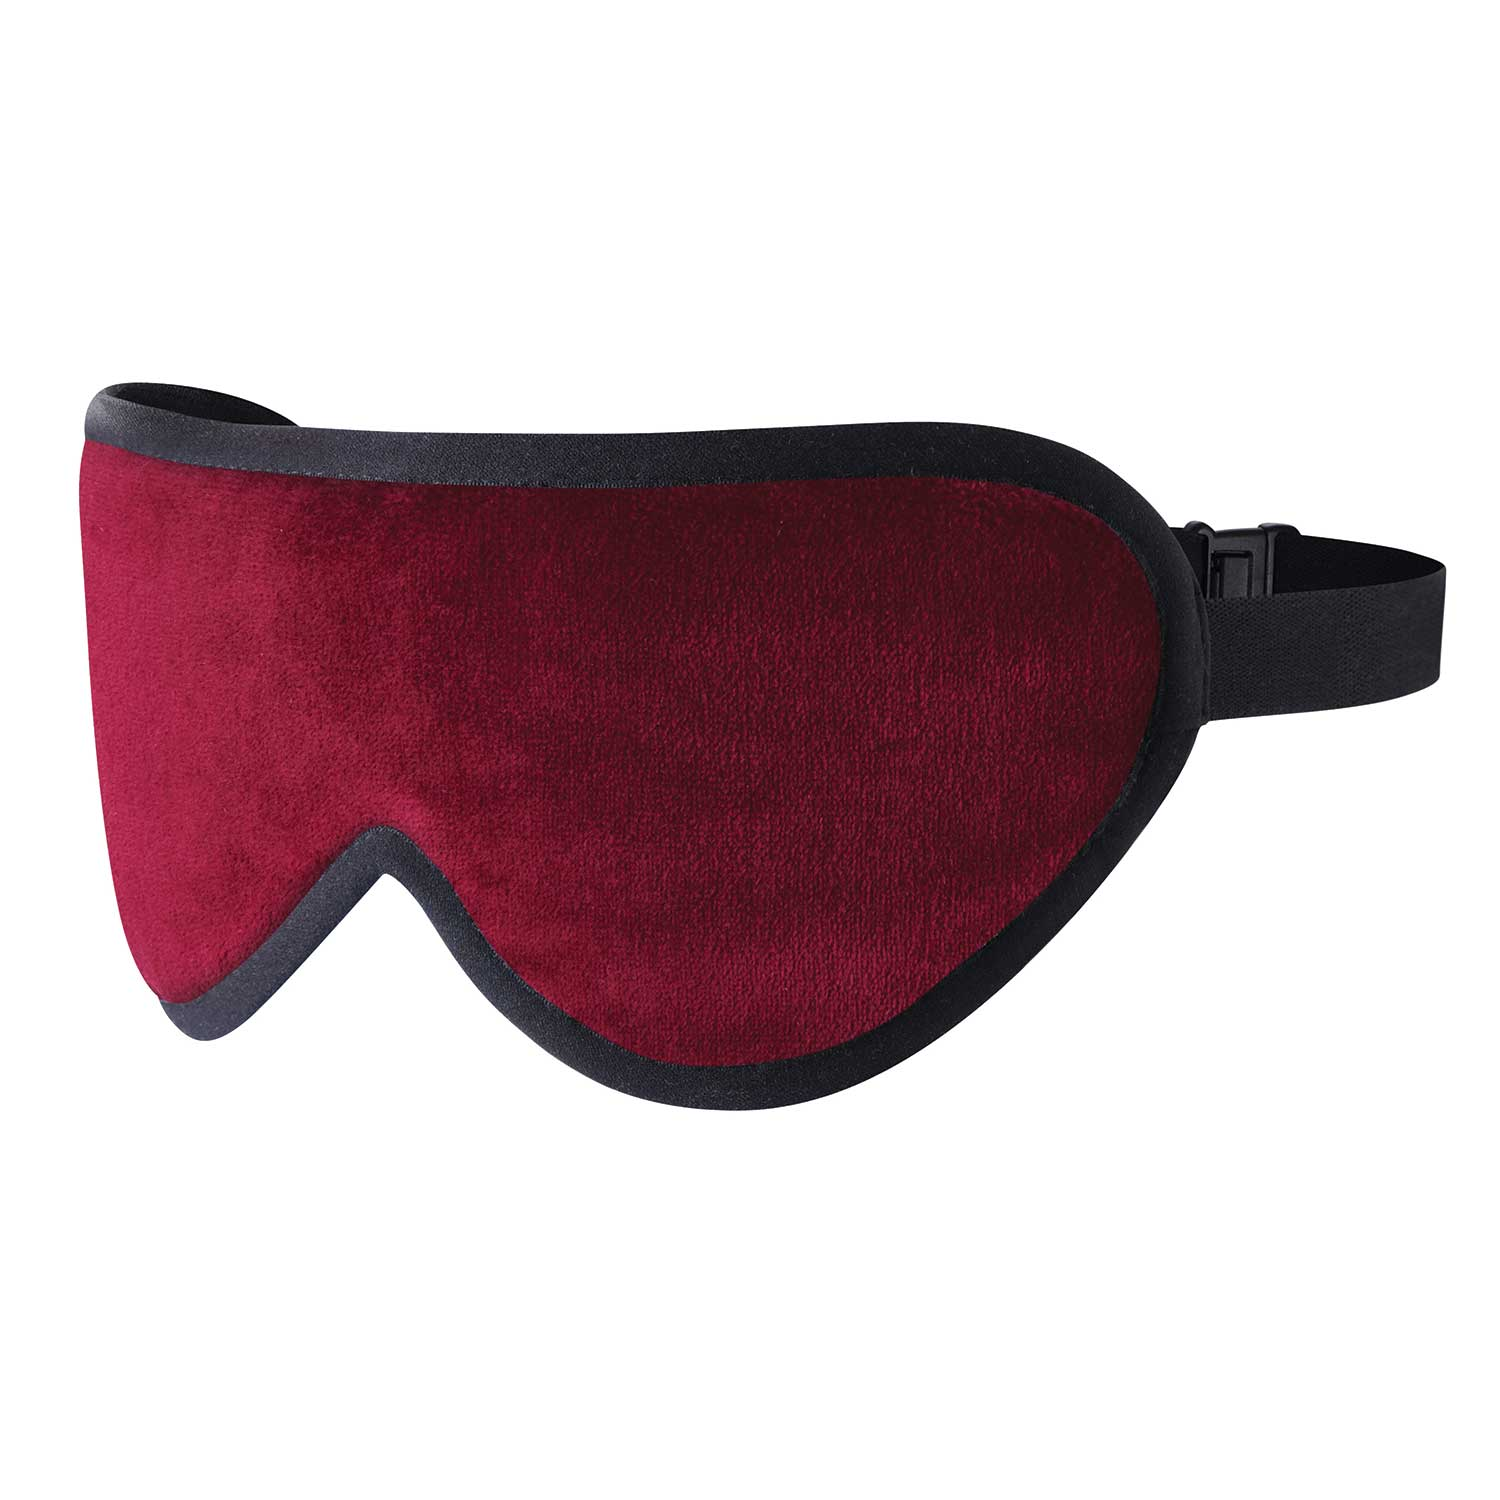 Luxury Sleep Mask in Burgundy